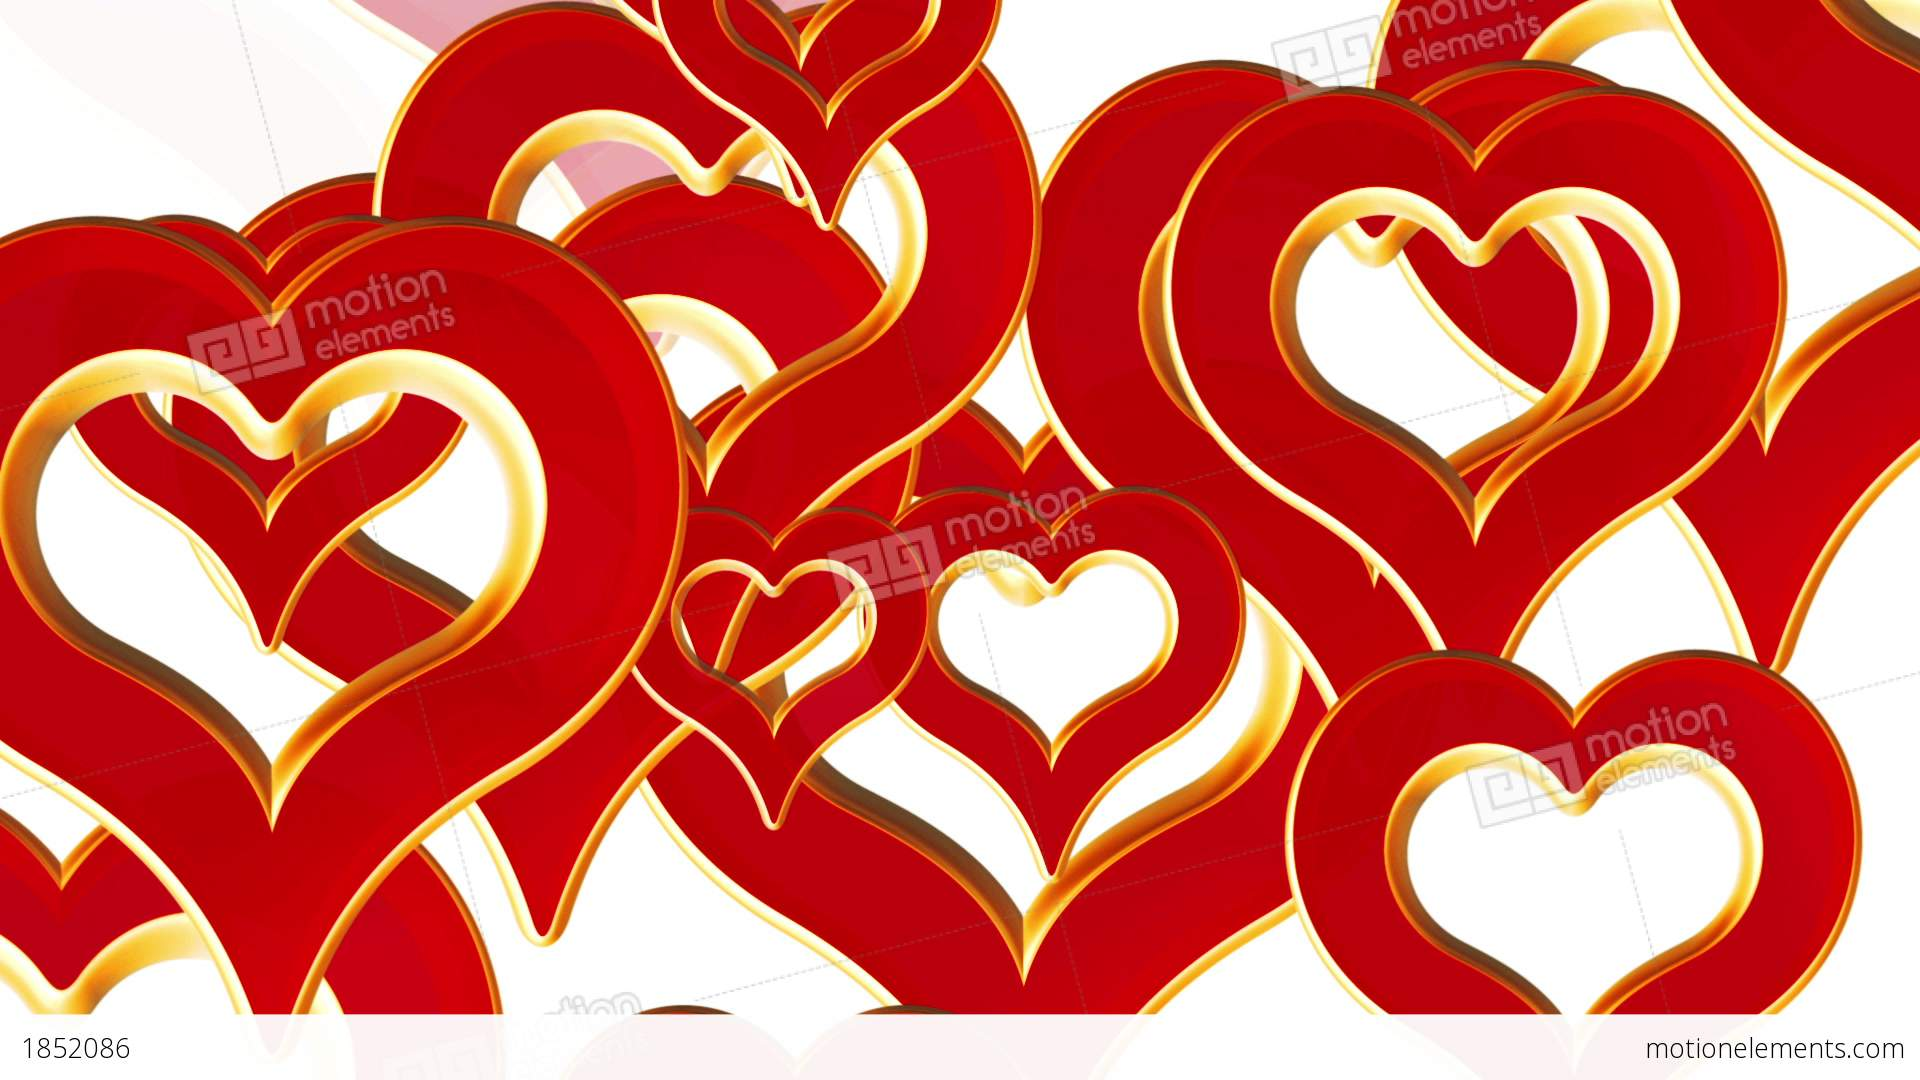 flying hearts, wedding background, valentines day, red love hearts